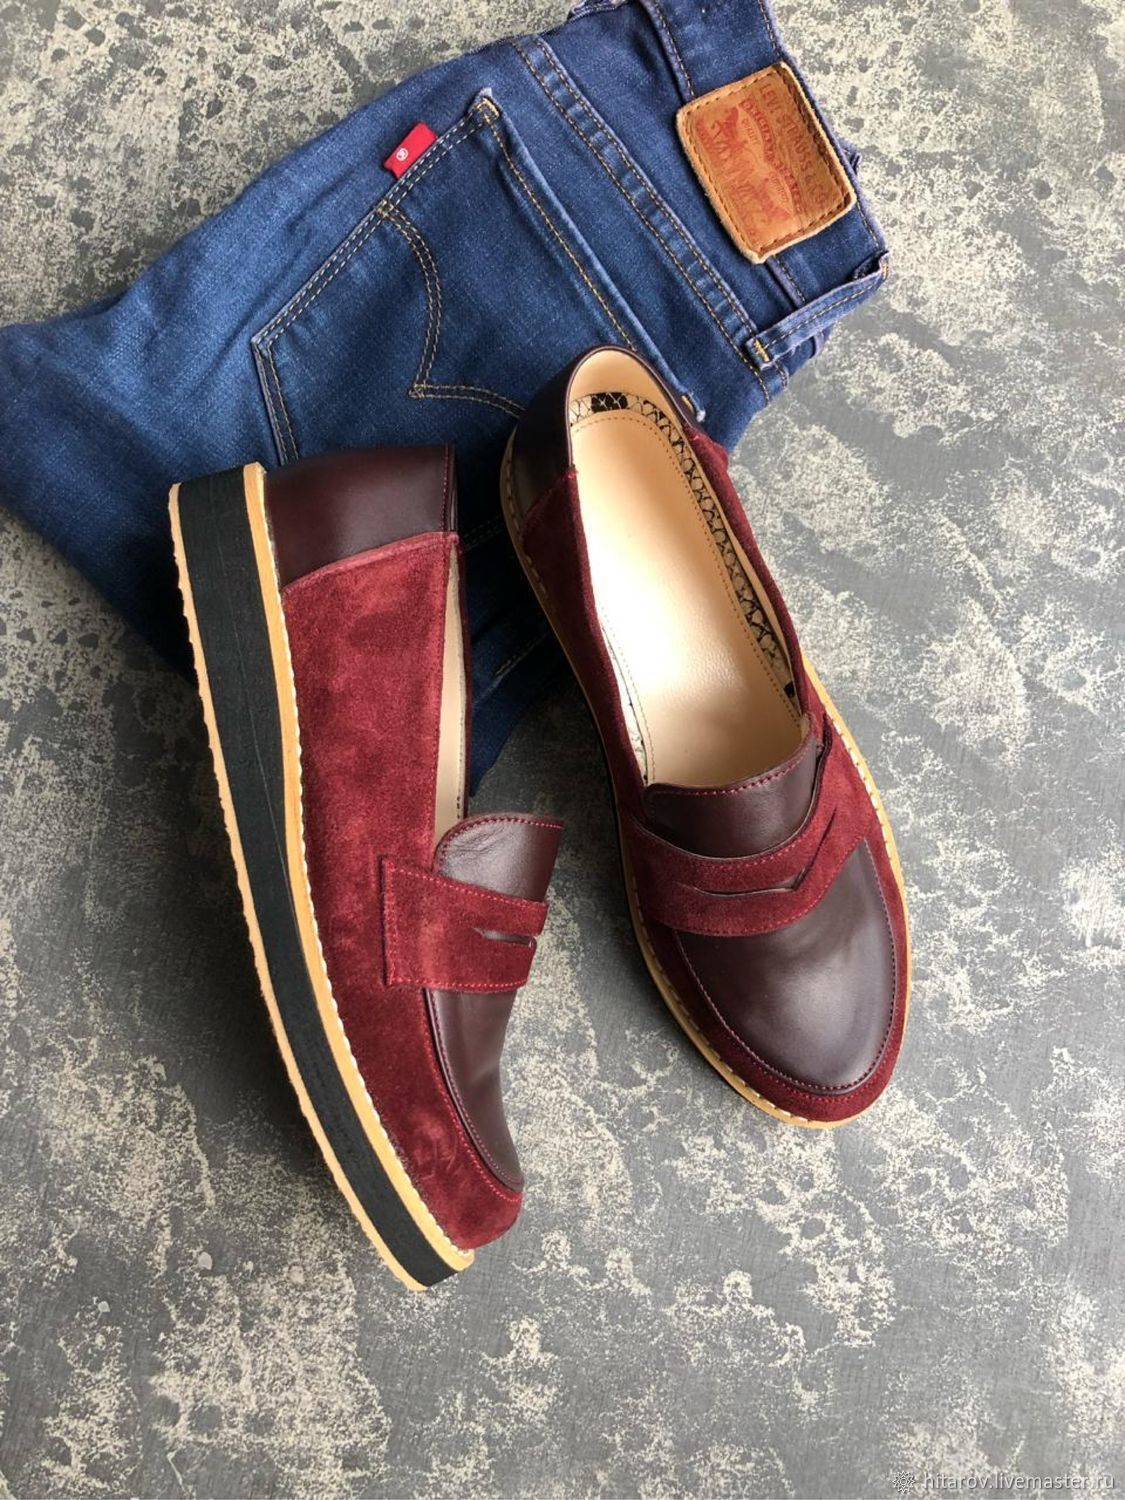 Pumps: maroon suede/maroon leather, Shoes, Moscow,  Фото №1